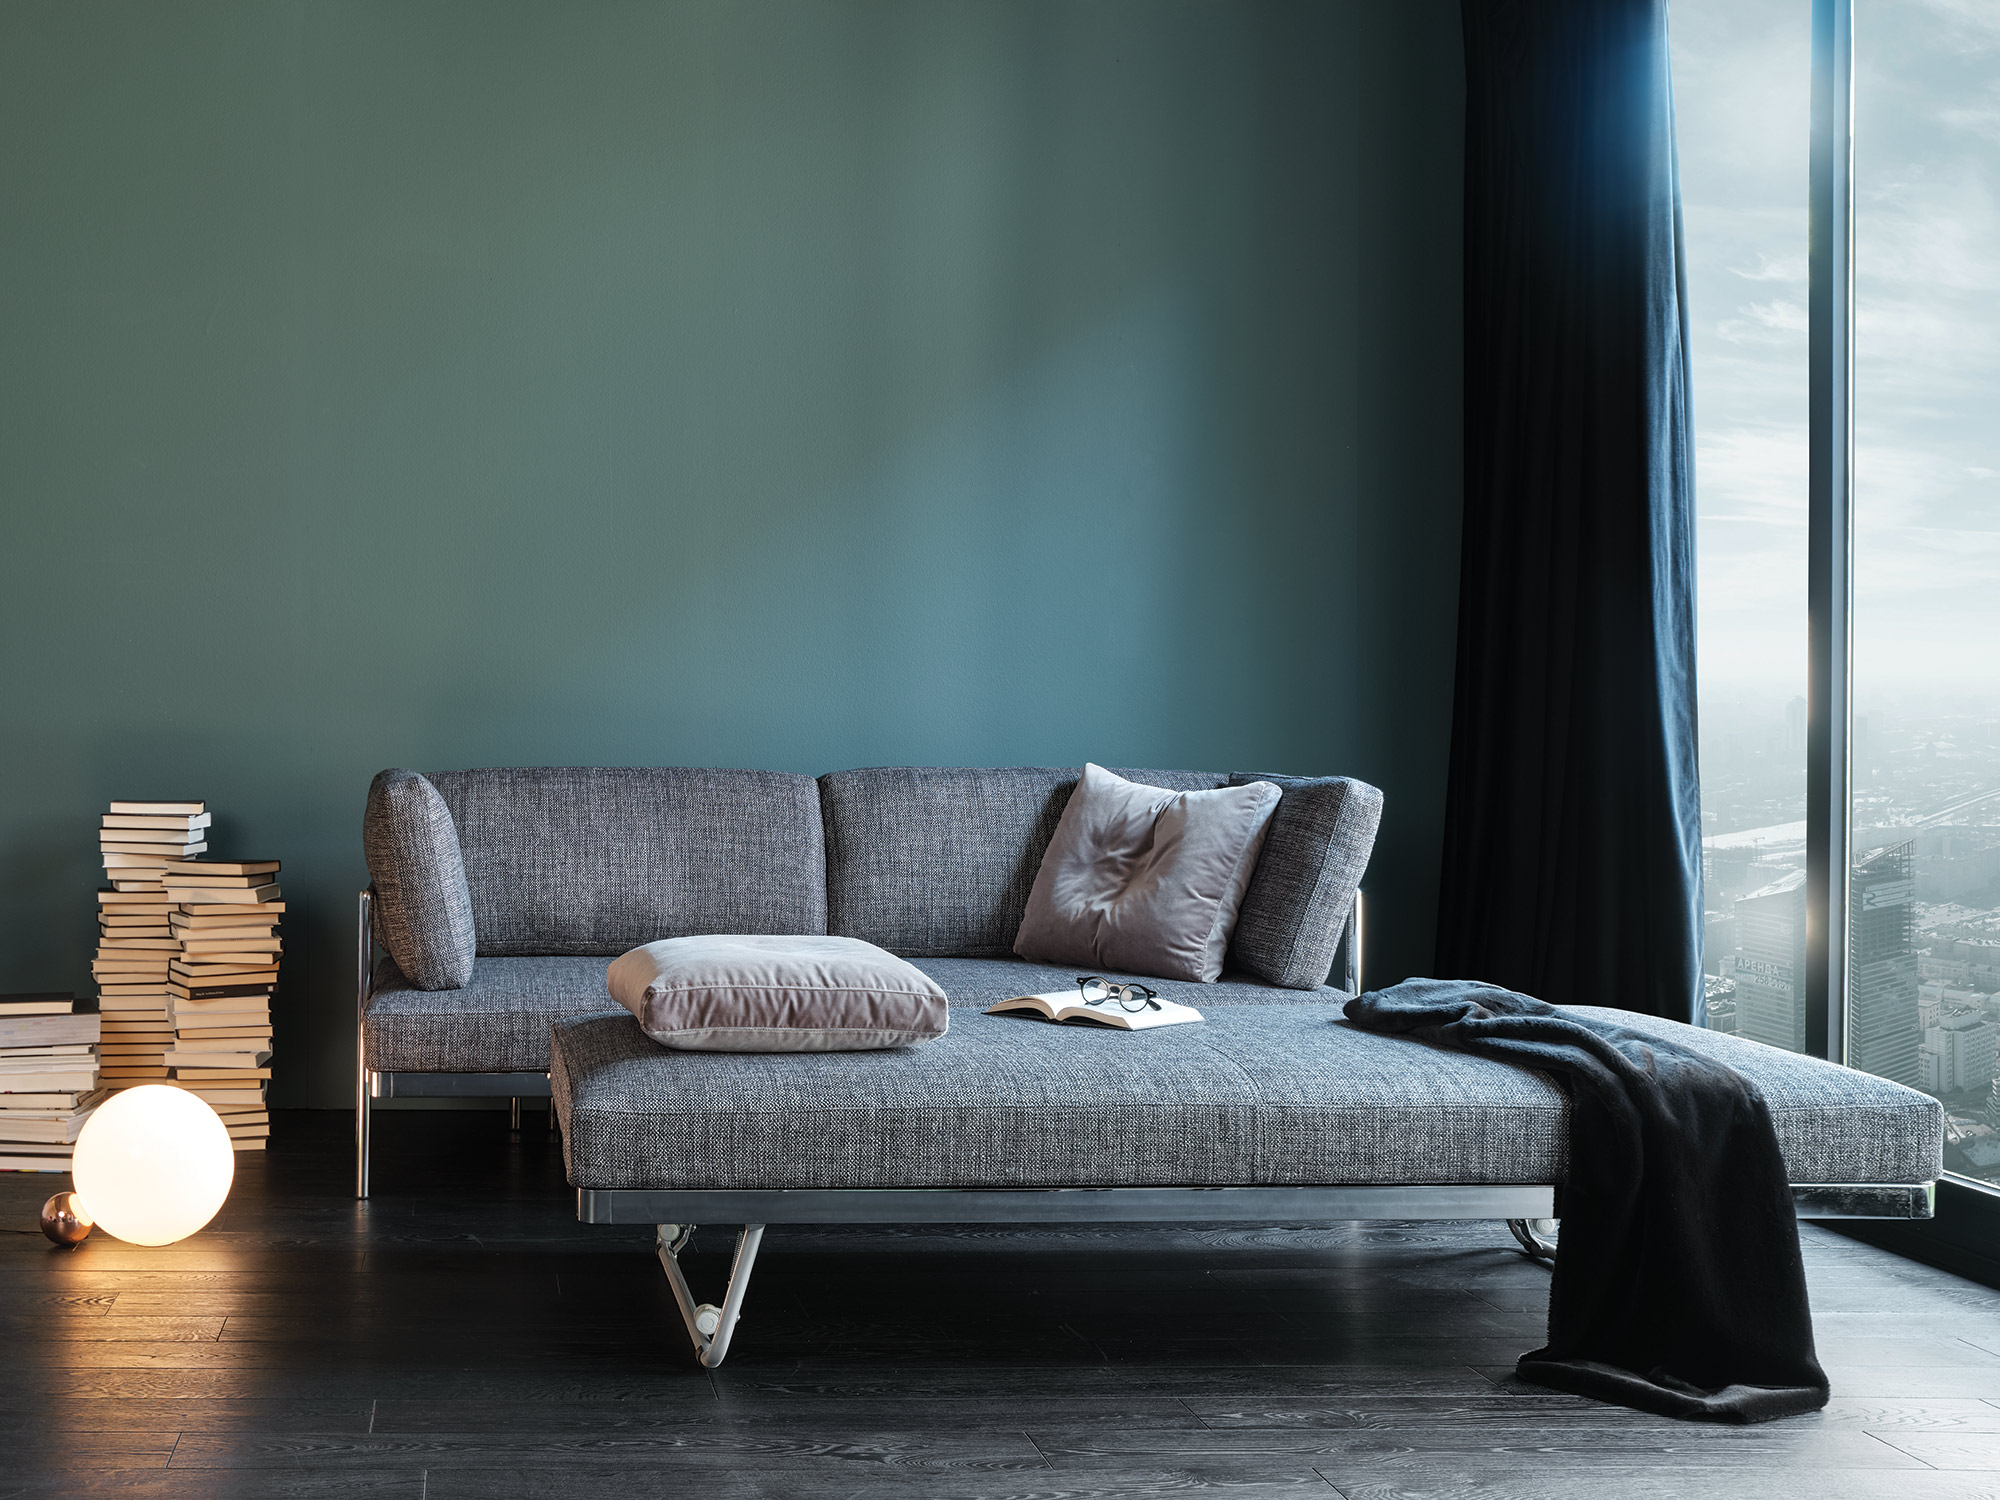 Mussi Twin sofa bed